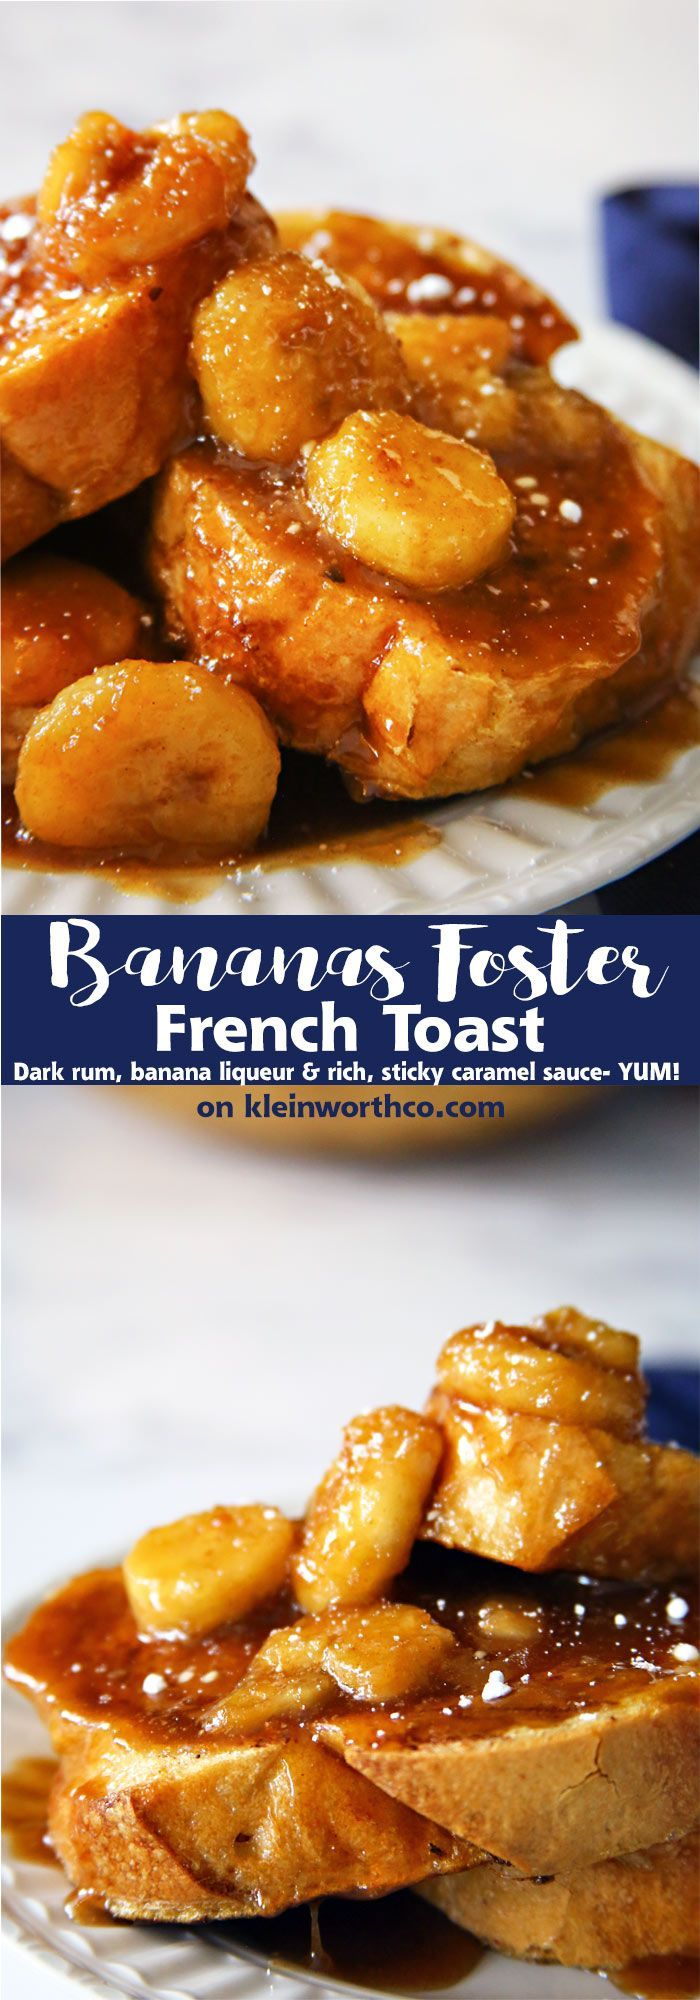 Bananas Foster French Toast is thick & eggy french toast smothered in bananas cooked in a dark rum, banana liqueur & a thick caramel sauce. It's divine! via @KleinworthCo